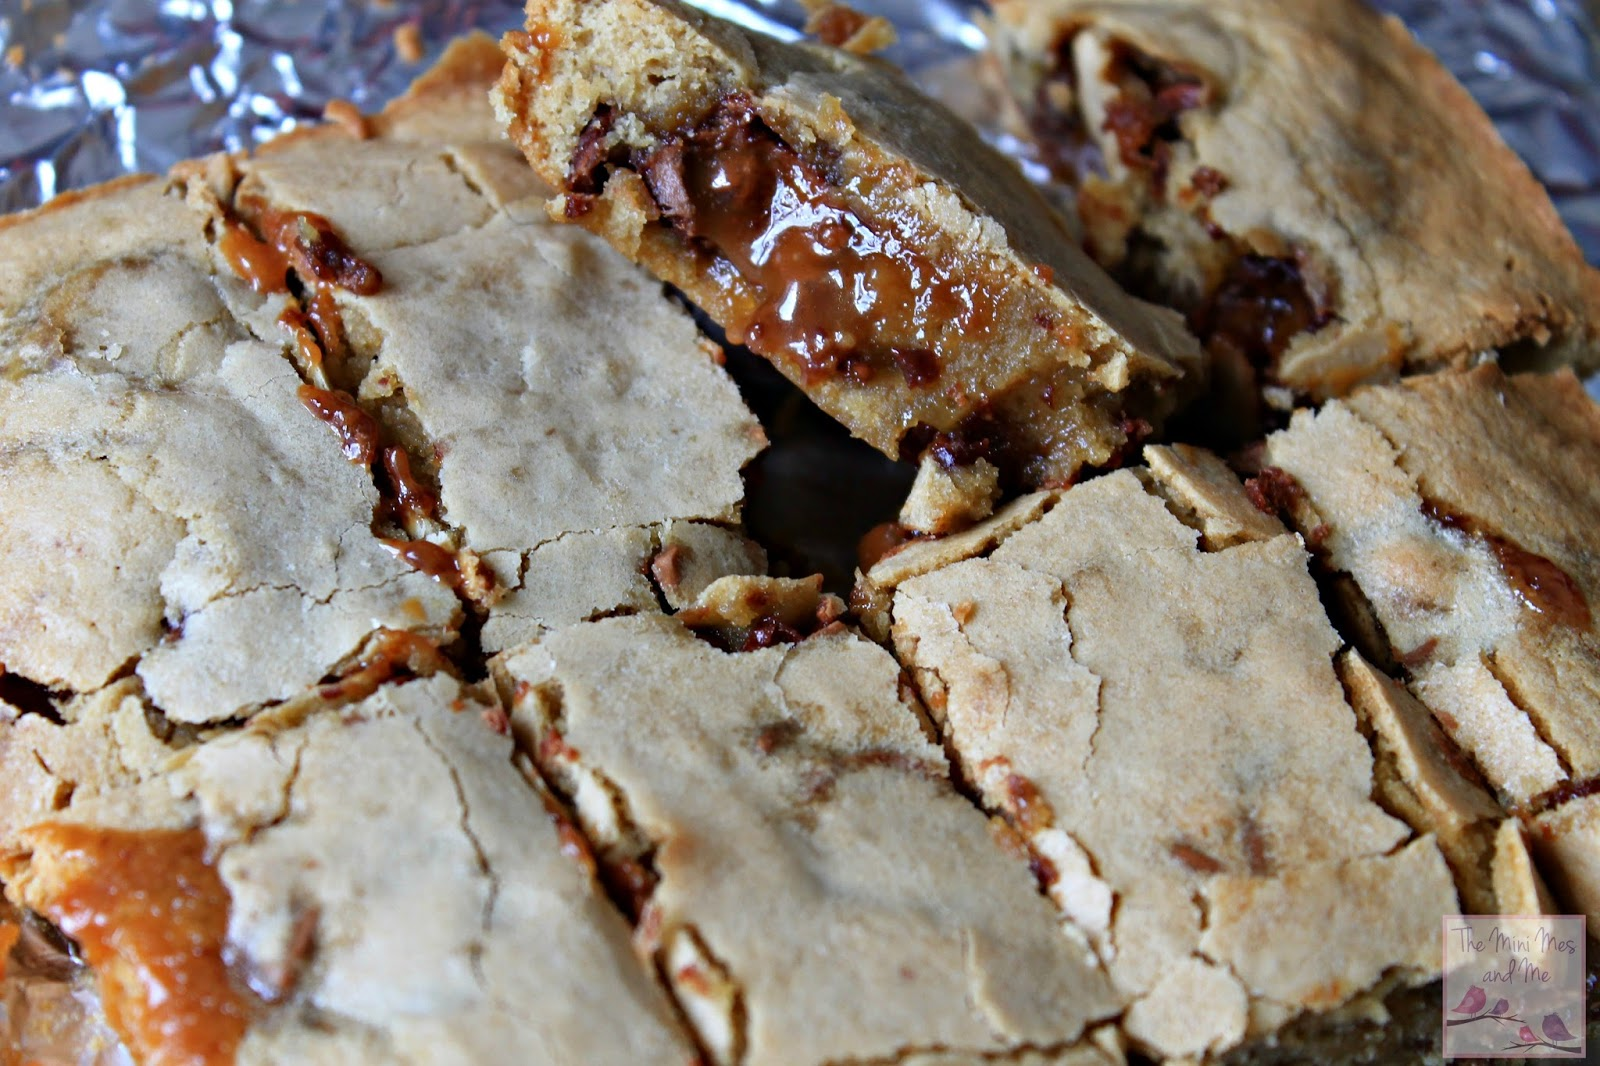 Delicious Rolo Blondies recipe